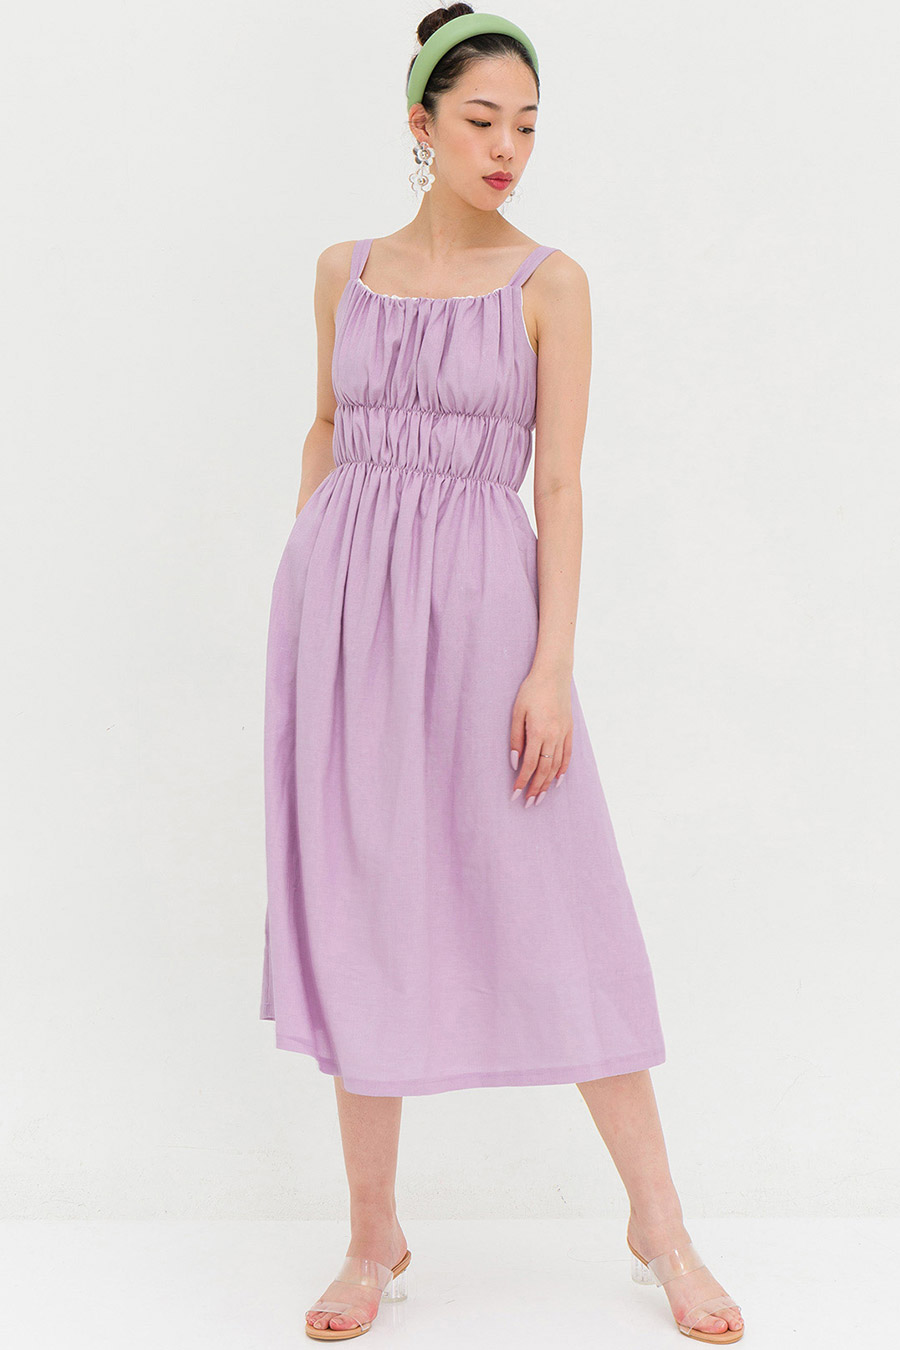 GAUTIER DRESS - LAVENDER [BY MODPARADE]